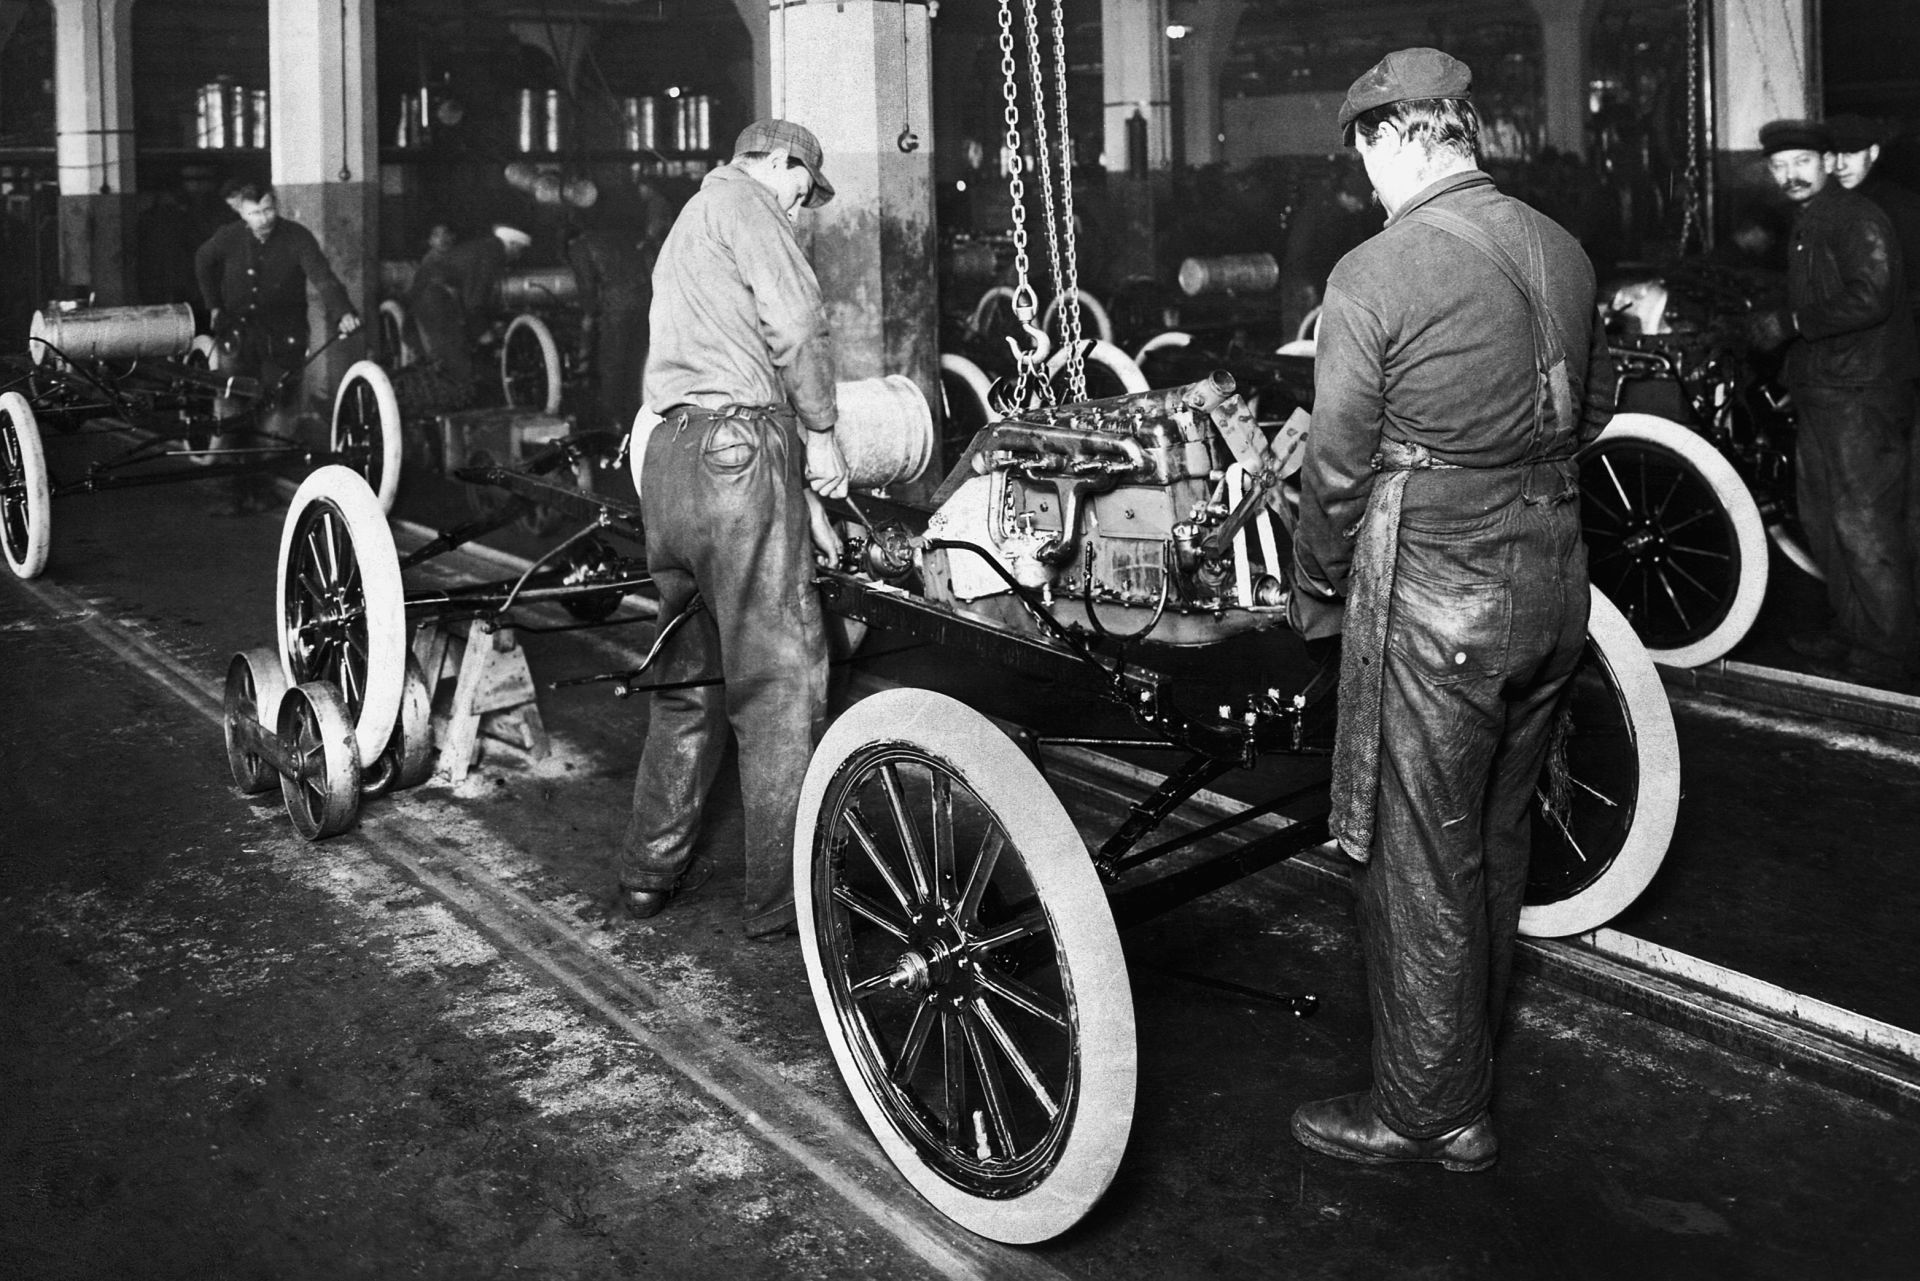 ... were flocking to Ford Motor Company's plant looking for work. Not only did this wage increase stabilize turnover, it also gave his employees the ability ...